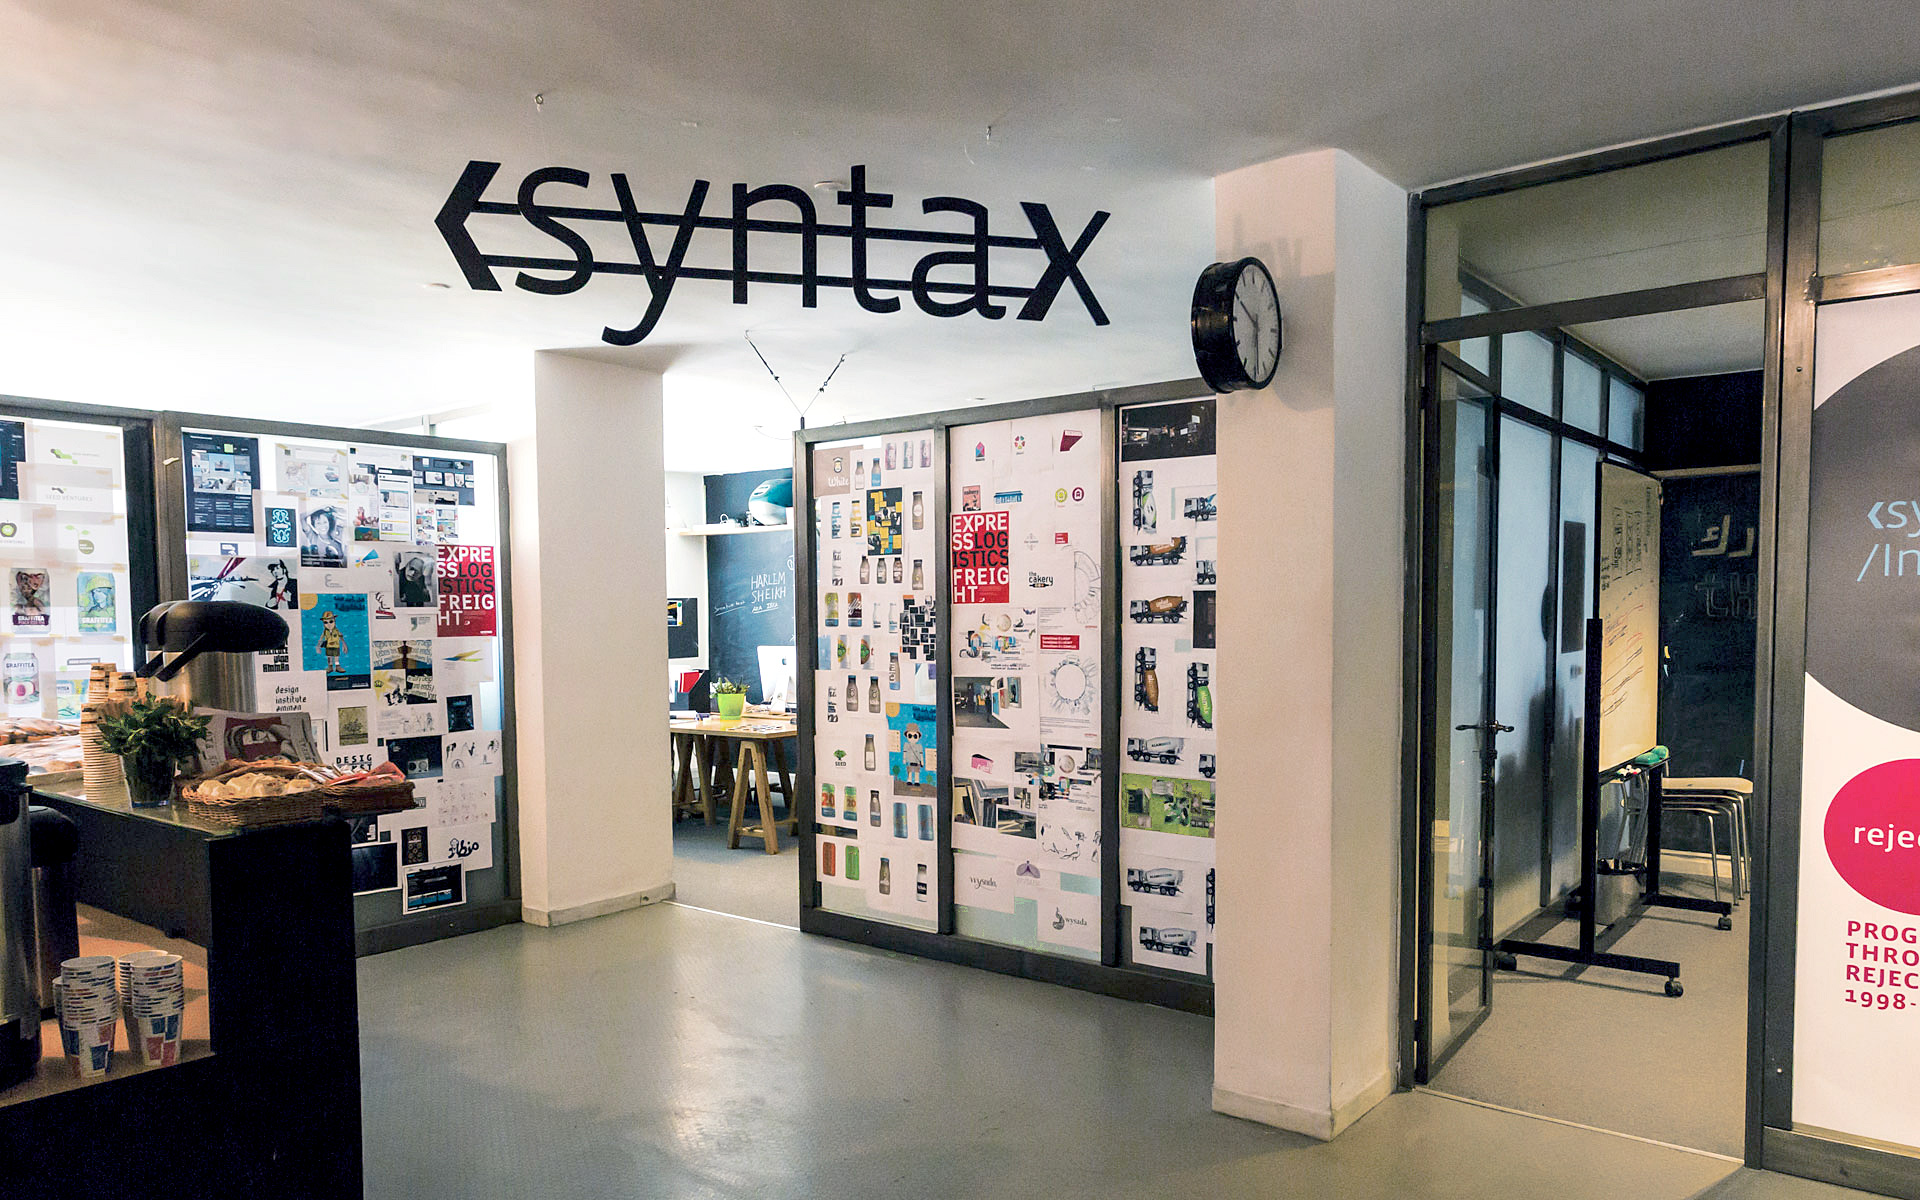 The Syntax Office